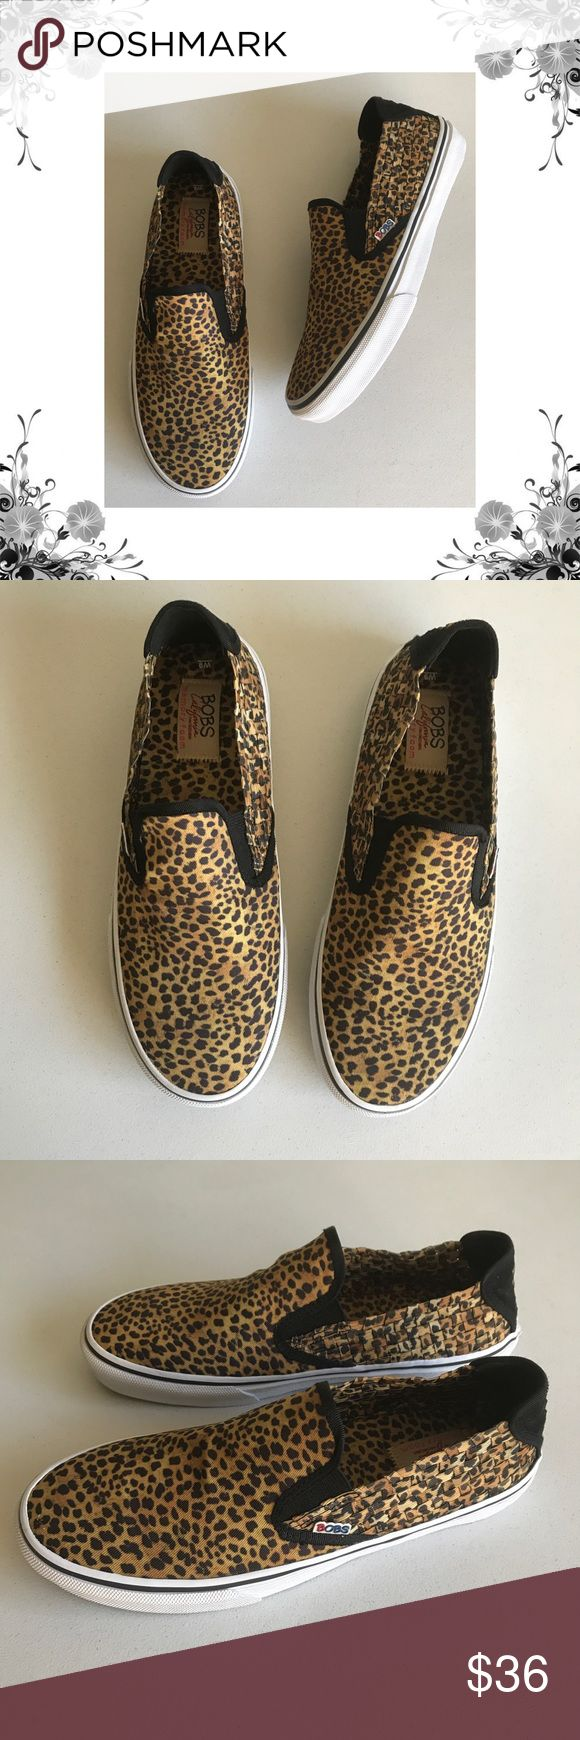 "{Skechers} Bob's The Menace Top Cat Slip-Ons Manufacturer Color is Leopard. New with box. Heel Height is approx 1"". Platform Height is approx 1"". Slip On. Textile/Man Made material. Woven fabric. Animal Print. Bundle for discounts! Thank you for shopping my closet! Skechers Shoes Flats & Loafers"